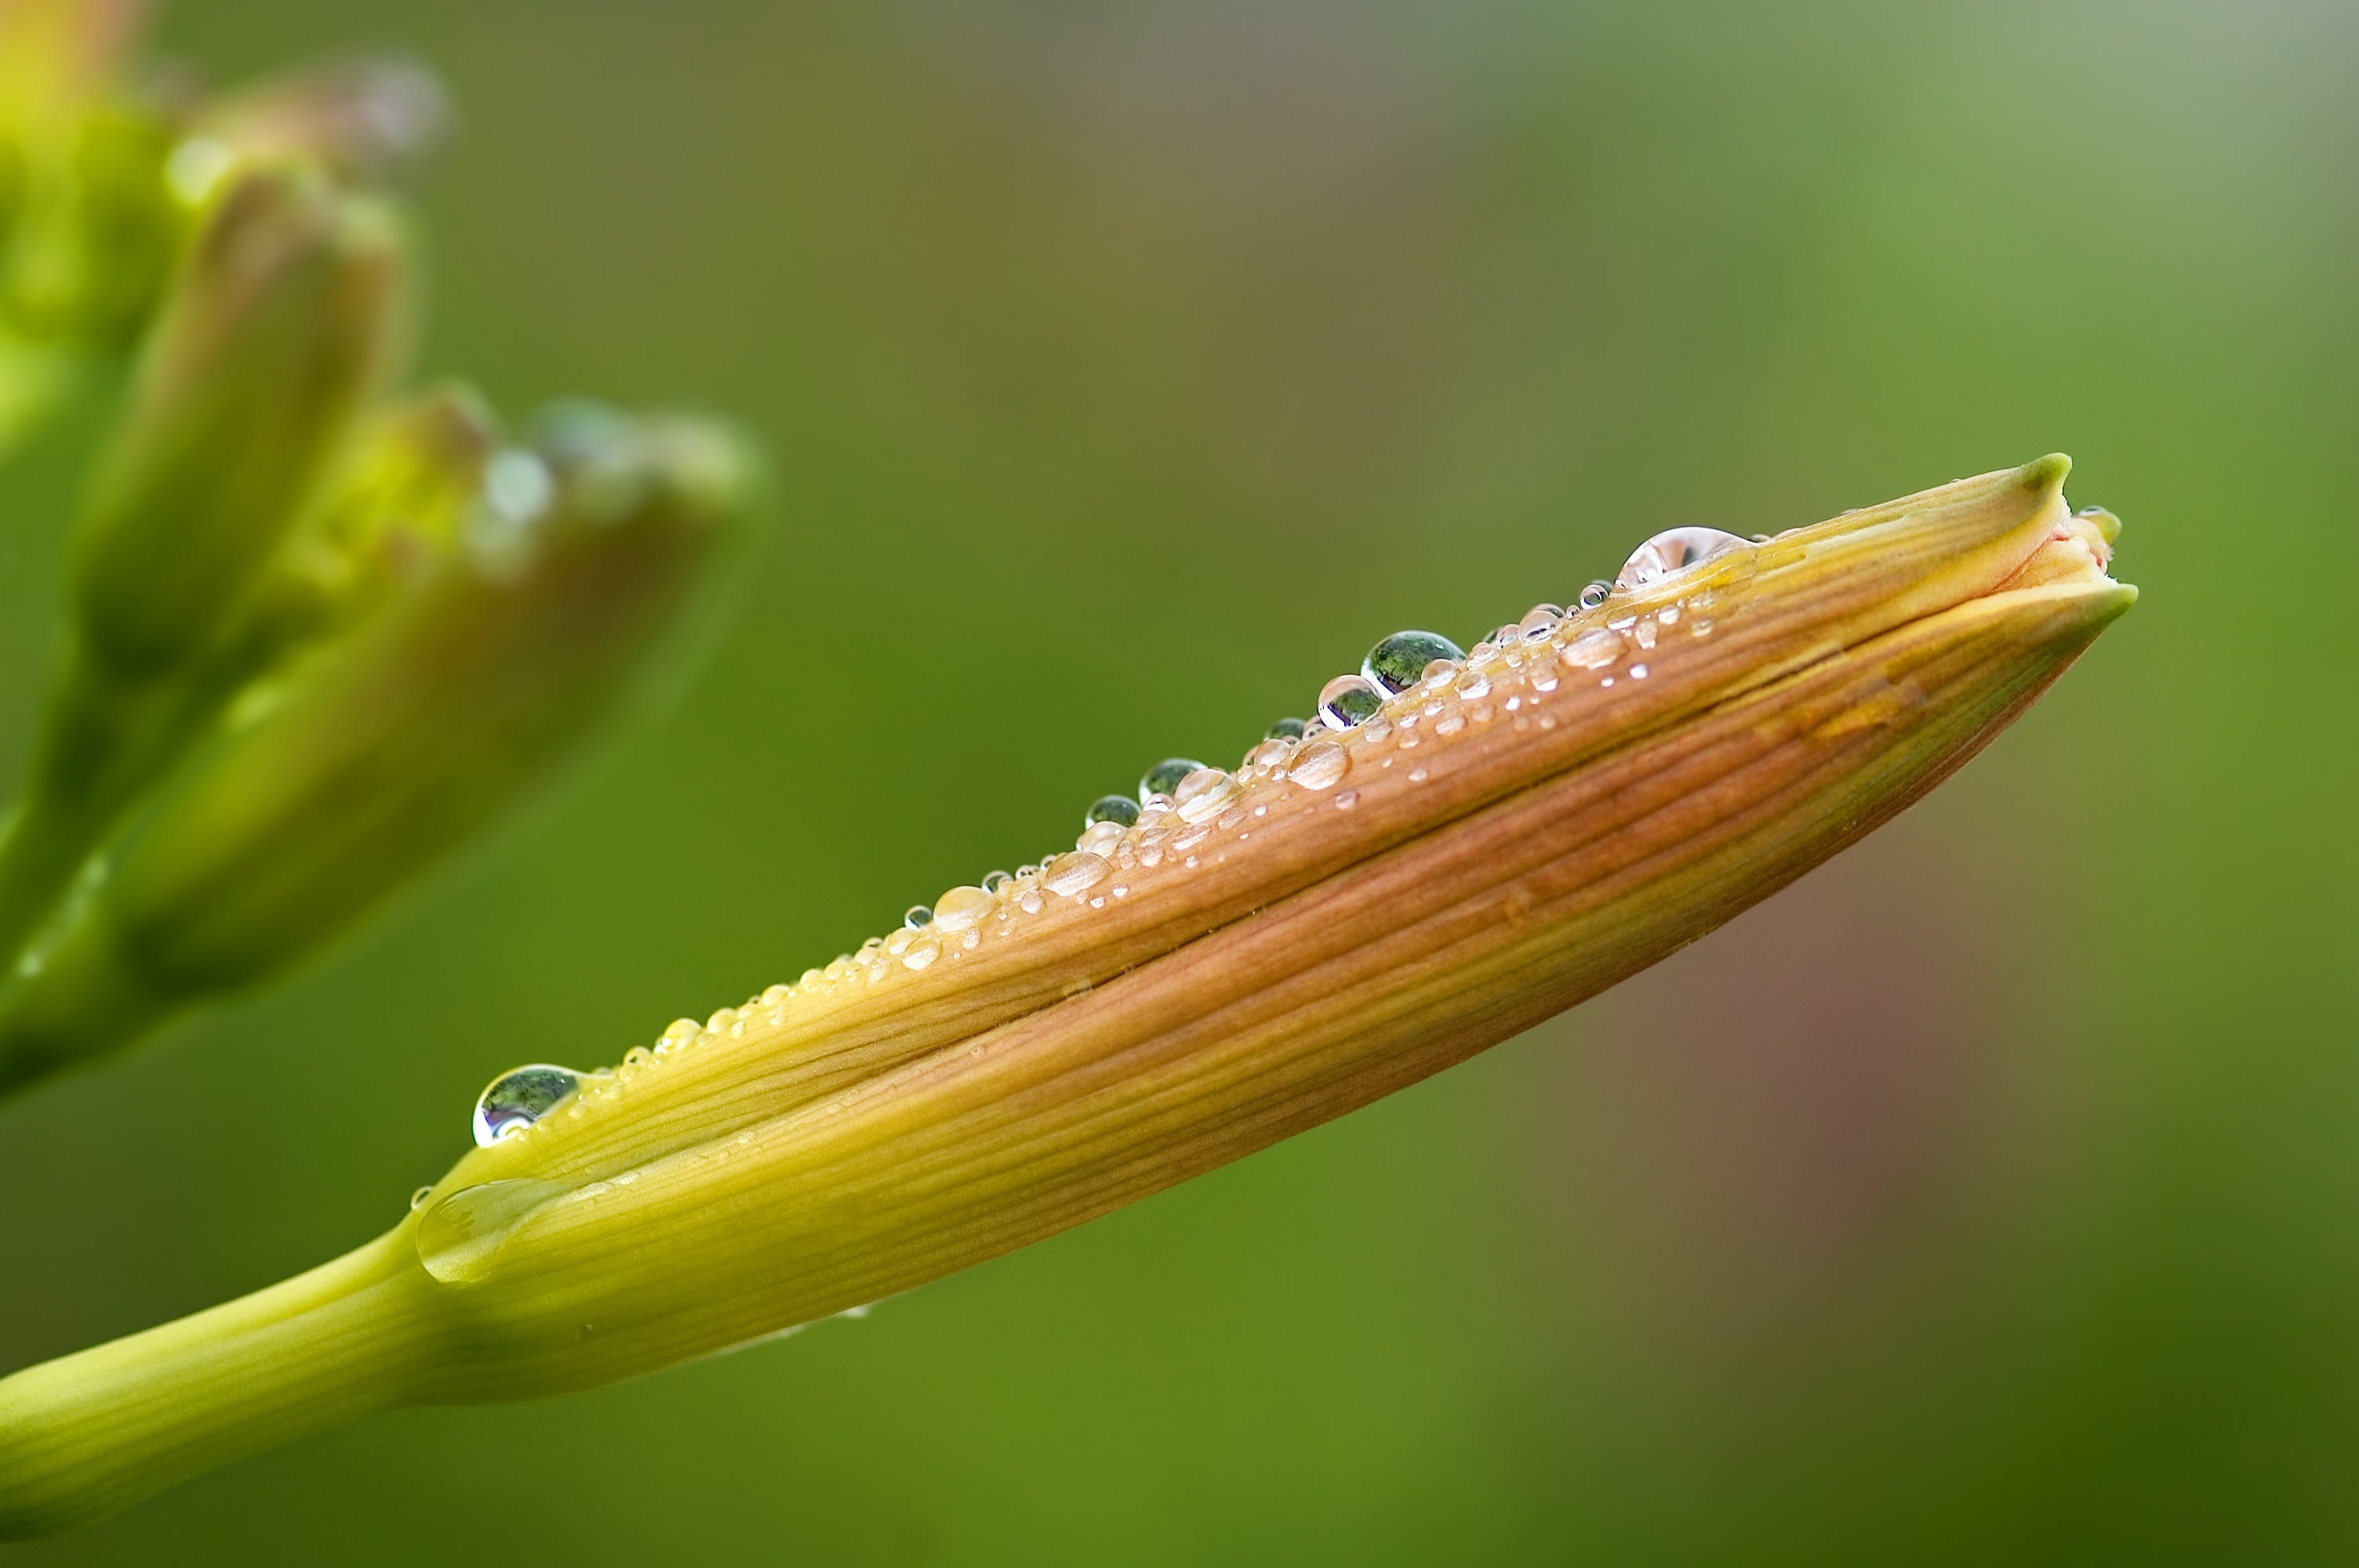 Free stock photo of plant, dew, wet, flower